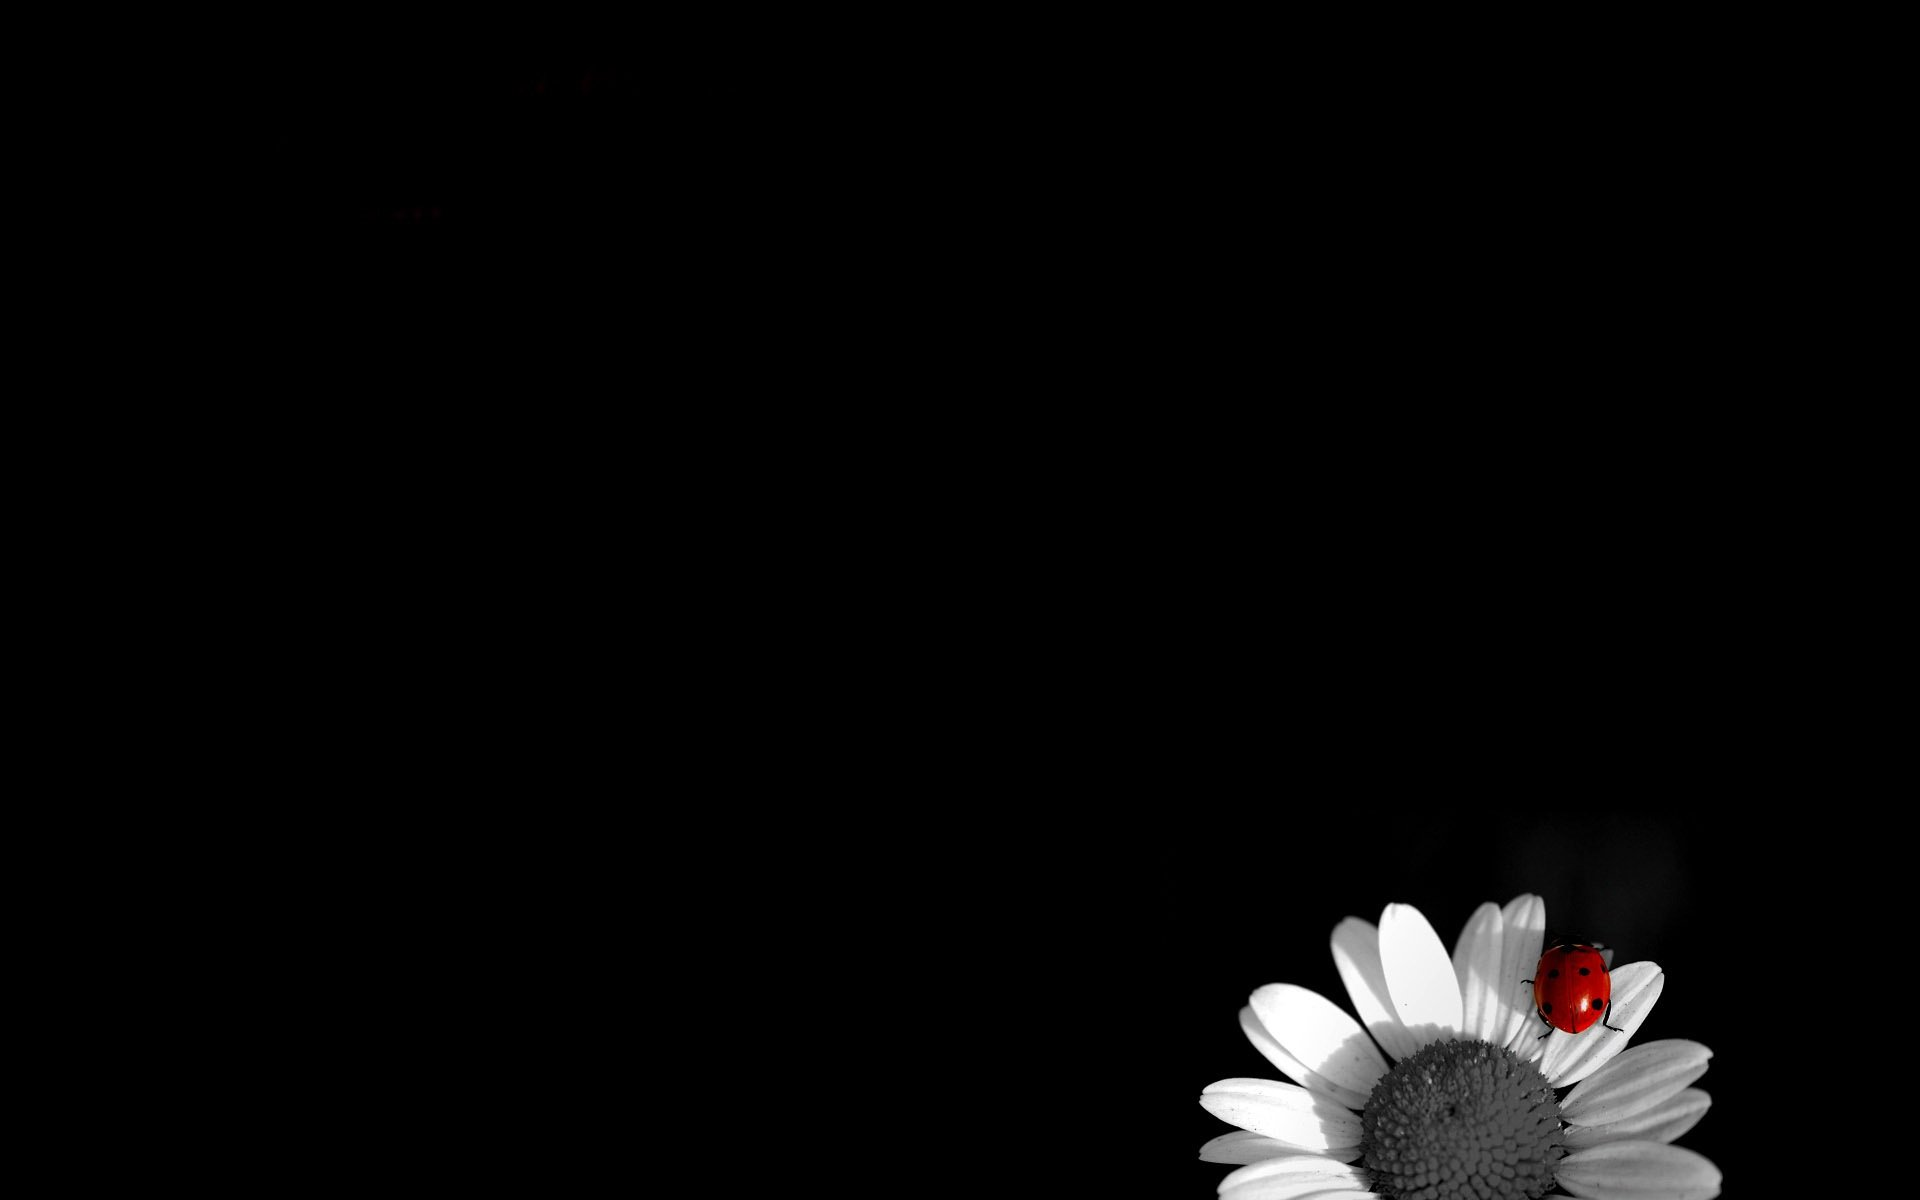 back to Black and White Flower Wallpaper HD for Desktop Next Image 1920x1200